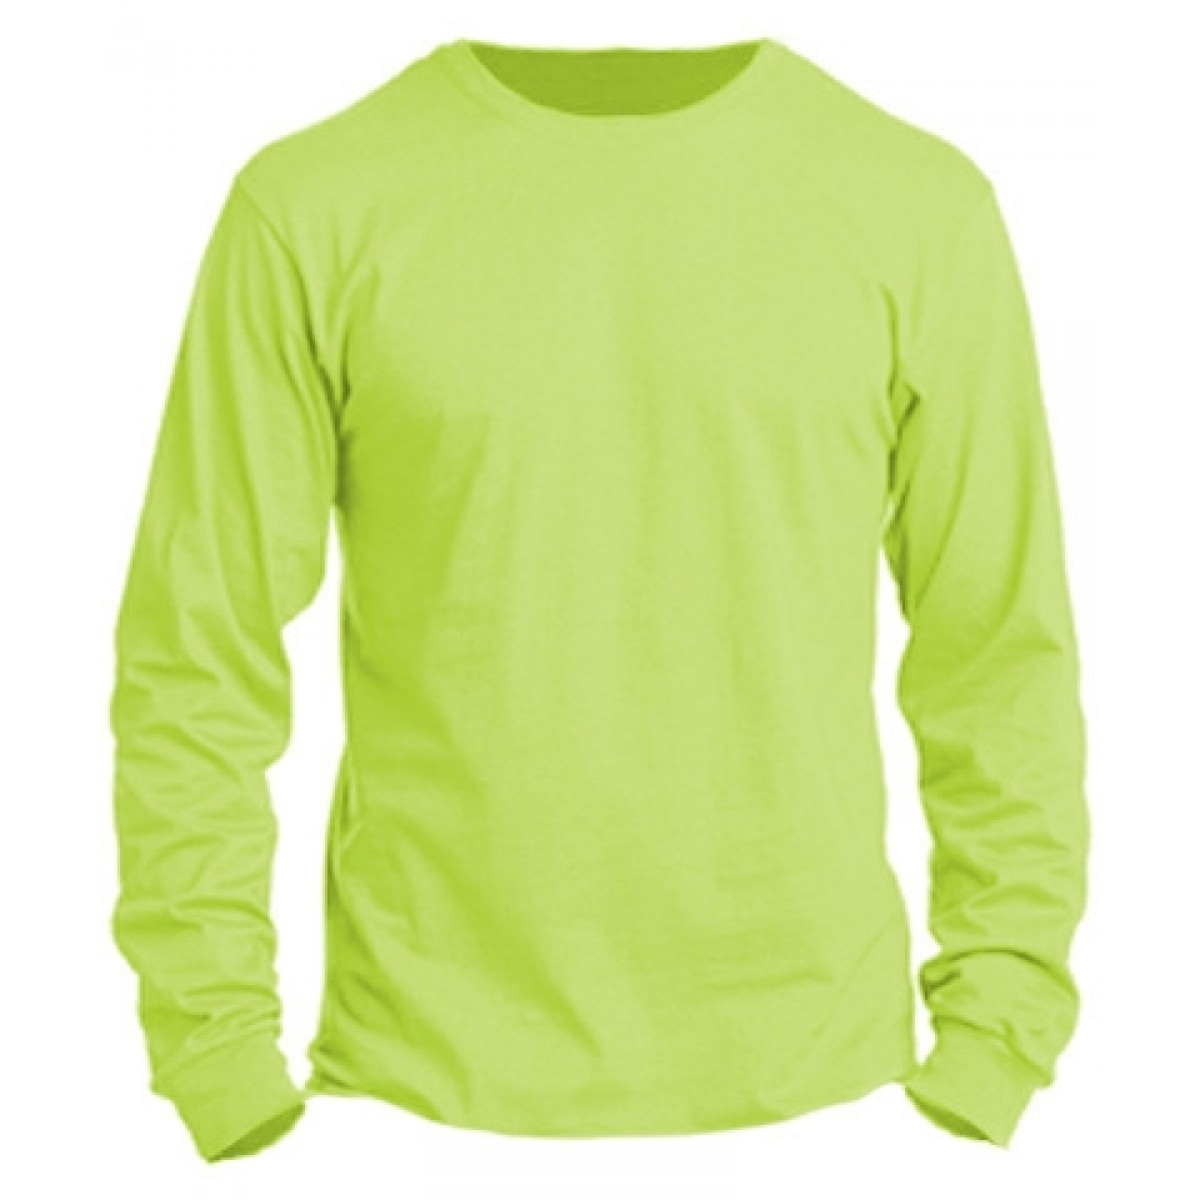 Basic Long Sleeve Crew Neck -Neon Green-YM